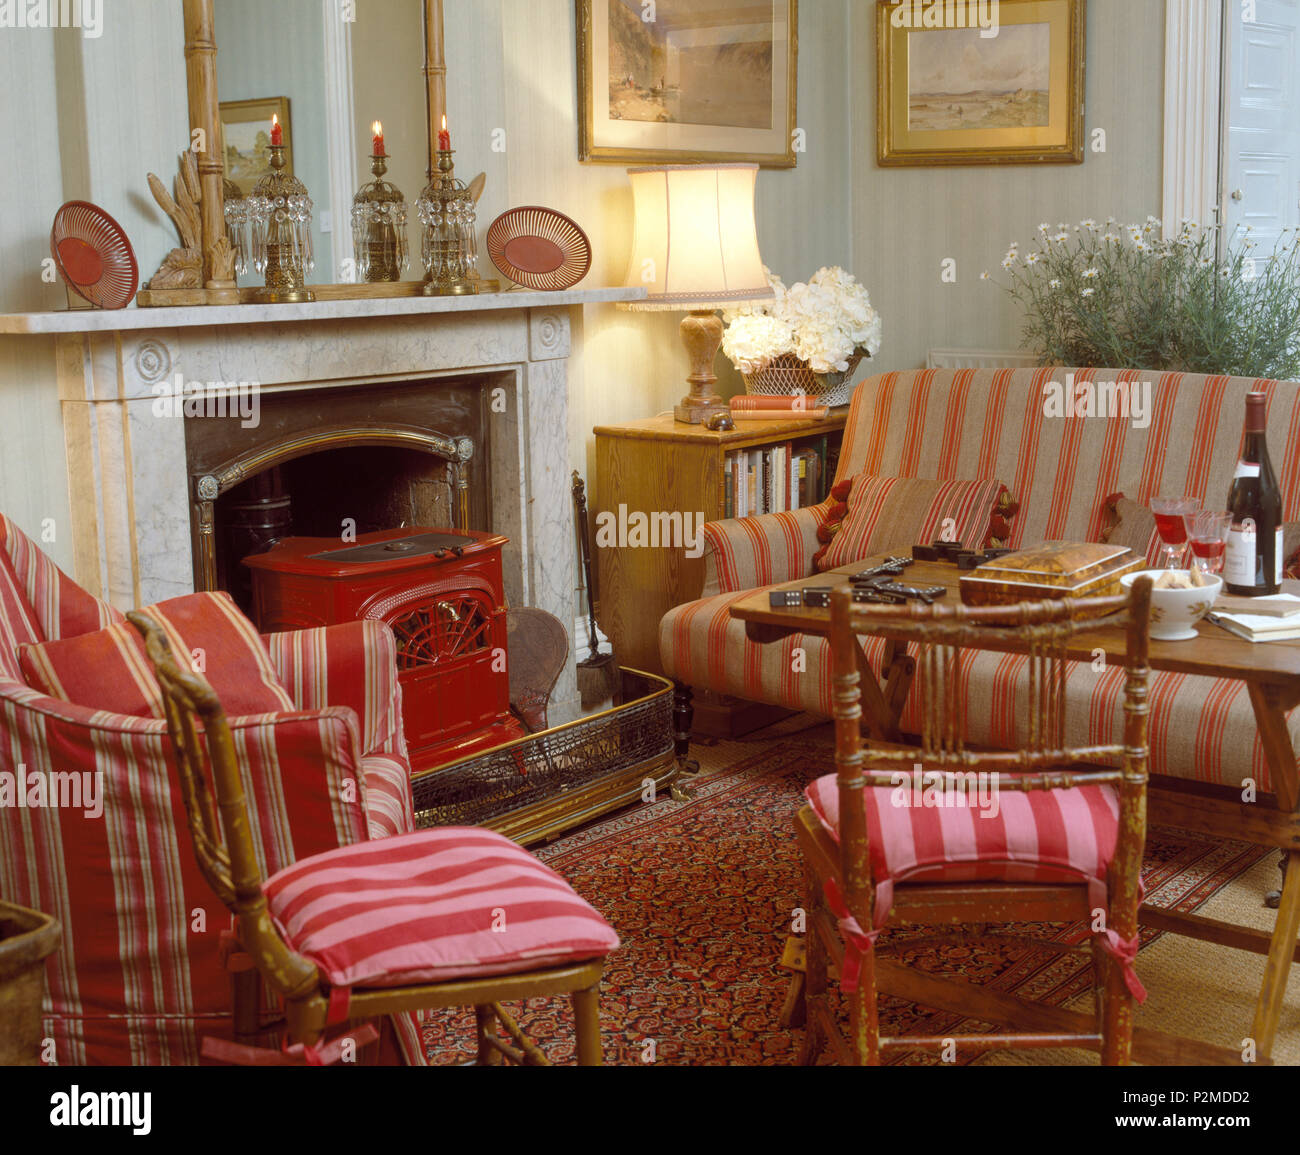 Striped red cushions on chairs and armchair beside fireplace with ...